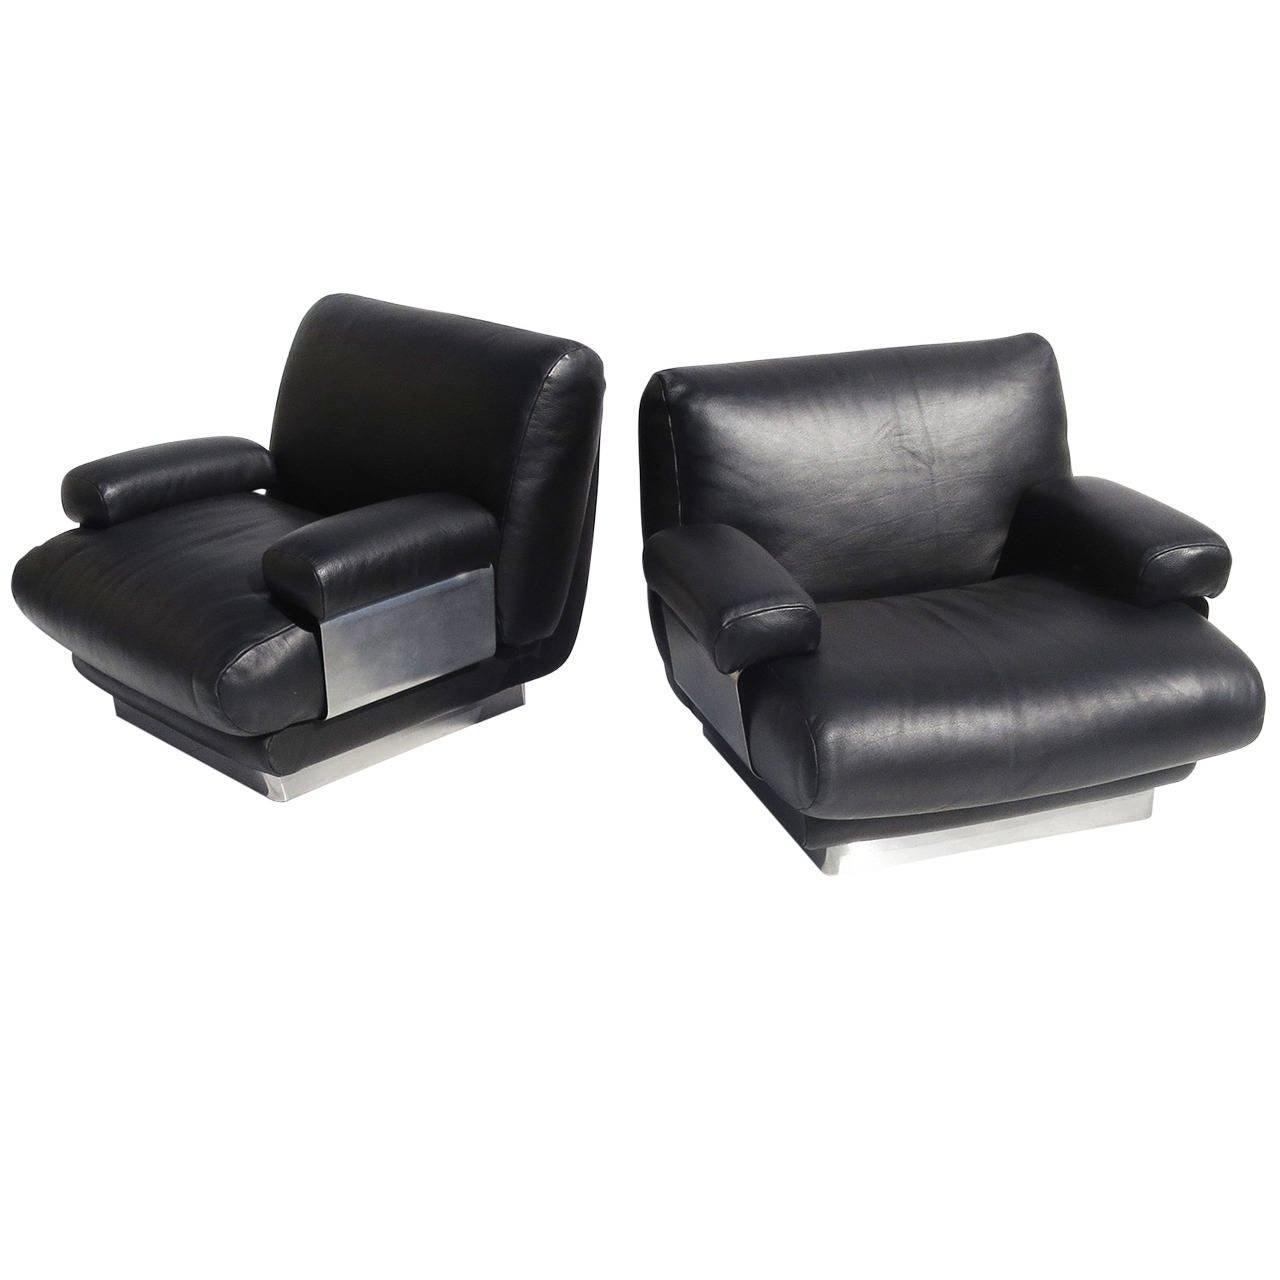 buffalo leather chair marcel breuer cesca replacement cane seat uk jacques charpentier club chairs in and